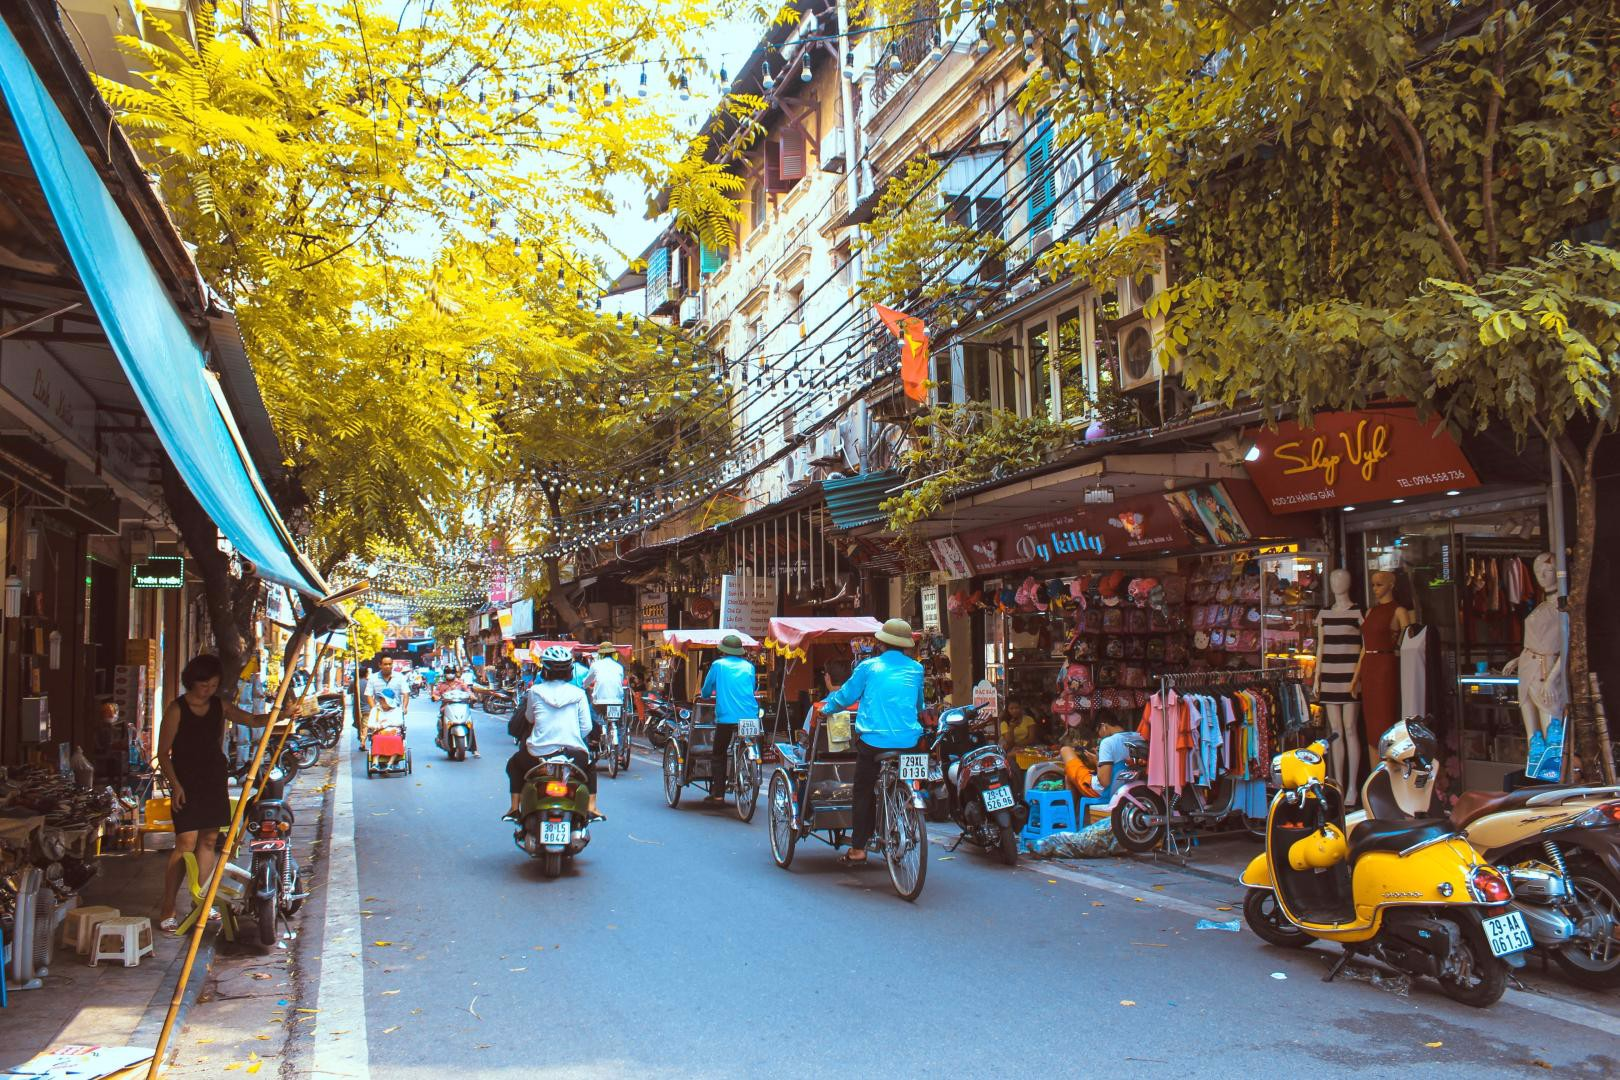 TOP HANOI LUXURY CITY TOUR IN 2021-2022